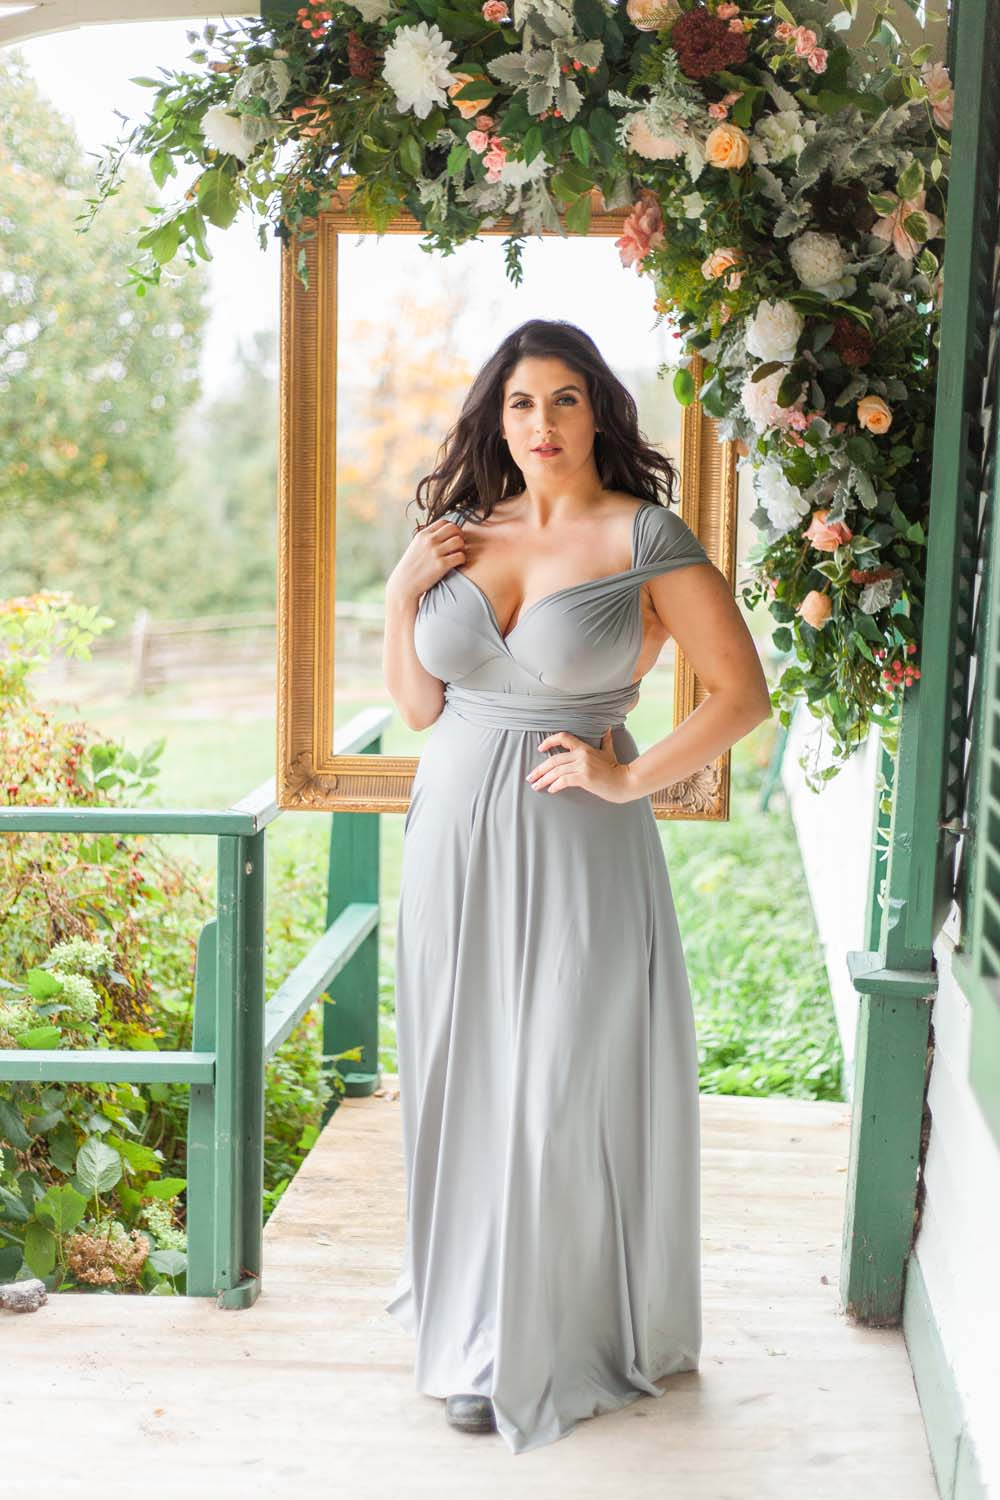 Henkaa Spring/Summer 2019 Bridesmaid Dresses - In Front of Frame